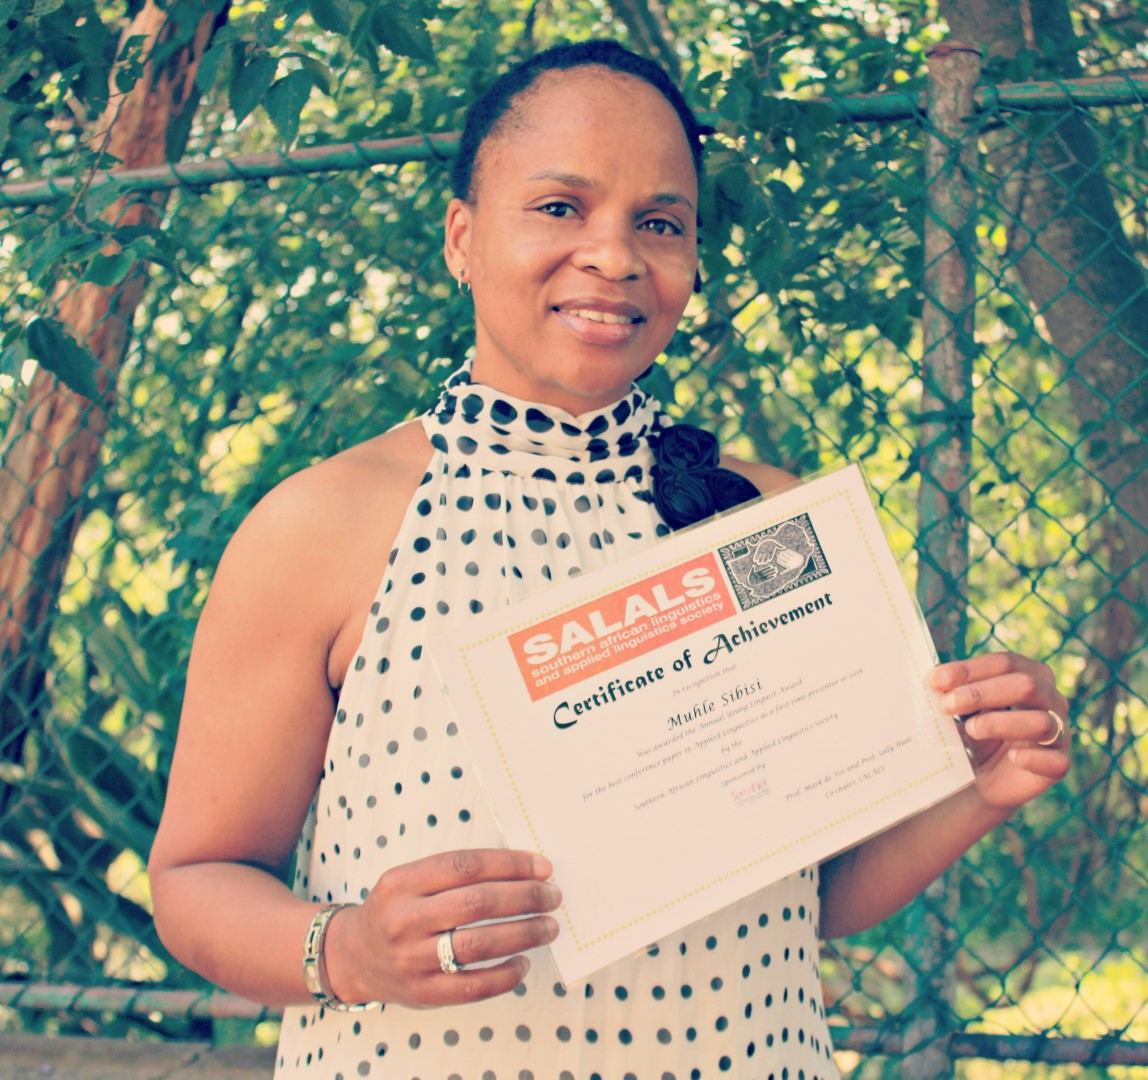 Lecturer Mrs Muhle Sibisi - the recipient of the Young Linguist Award.